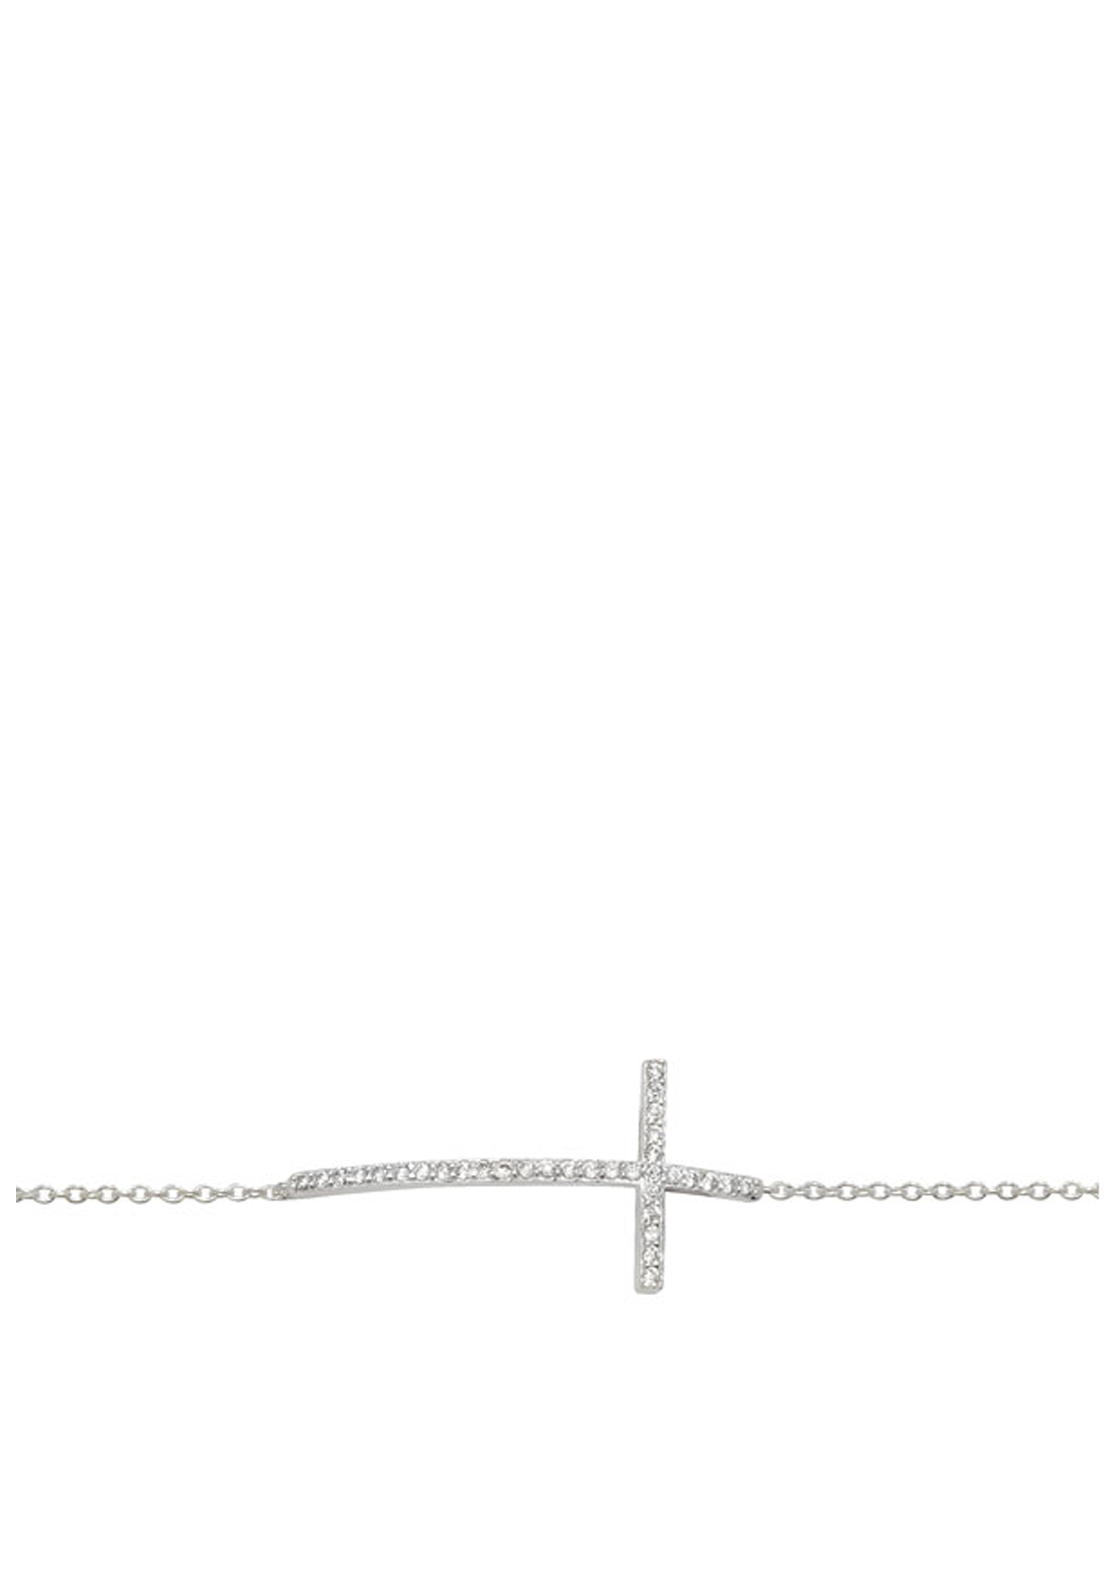 Girls Sterling Silver & Cubic Zirconia Cross Bracelet